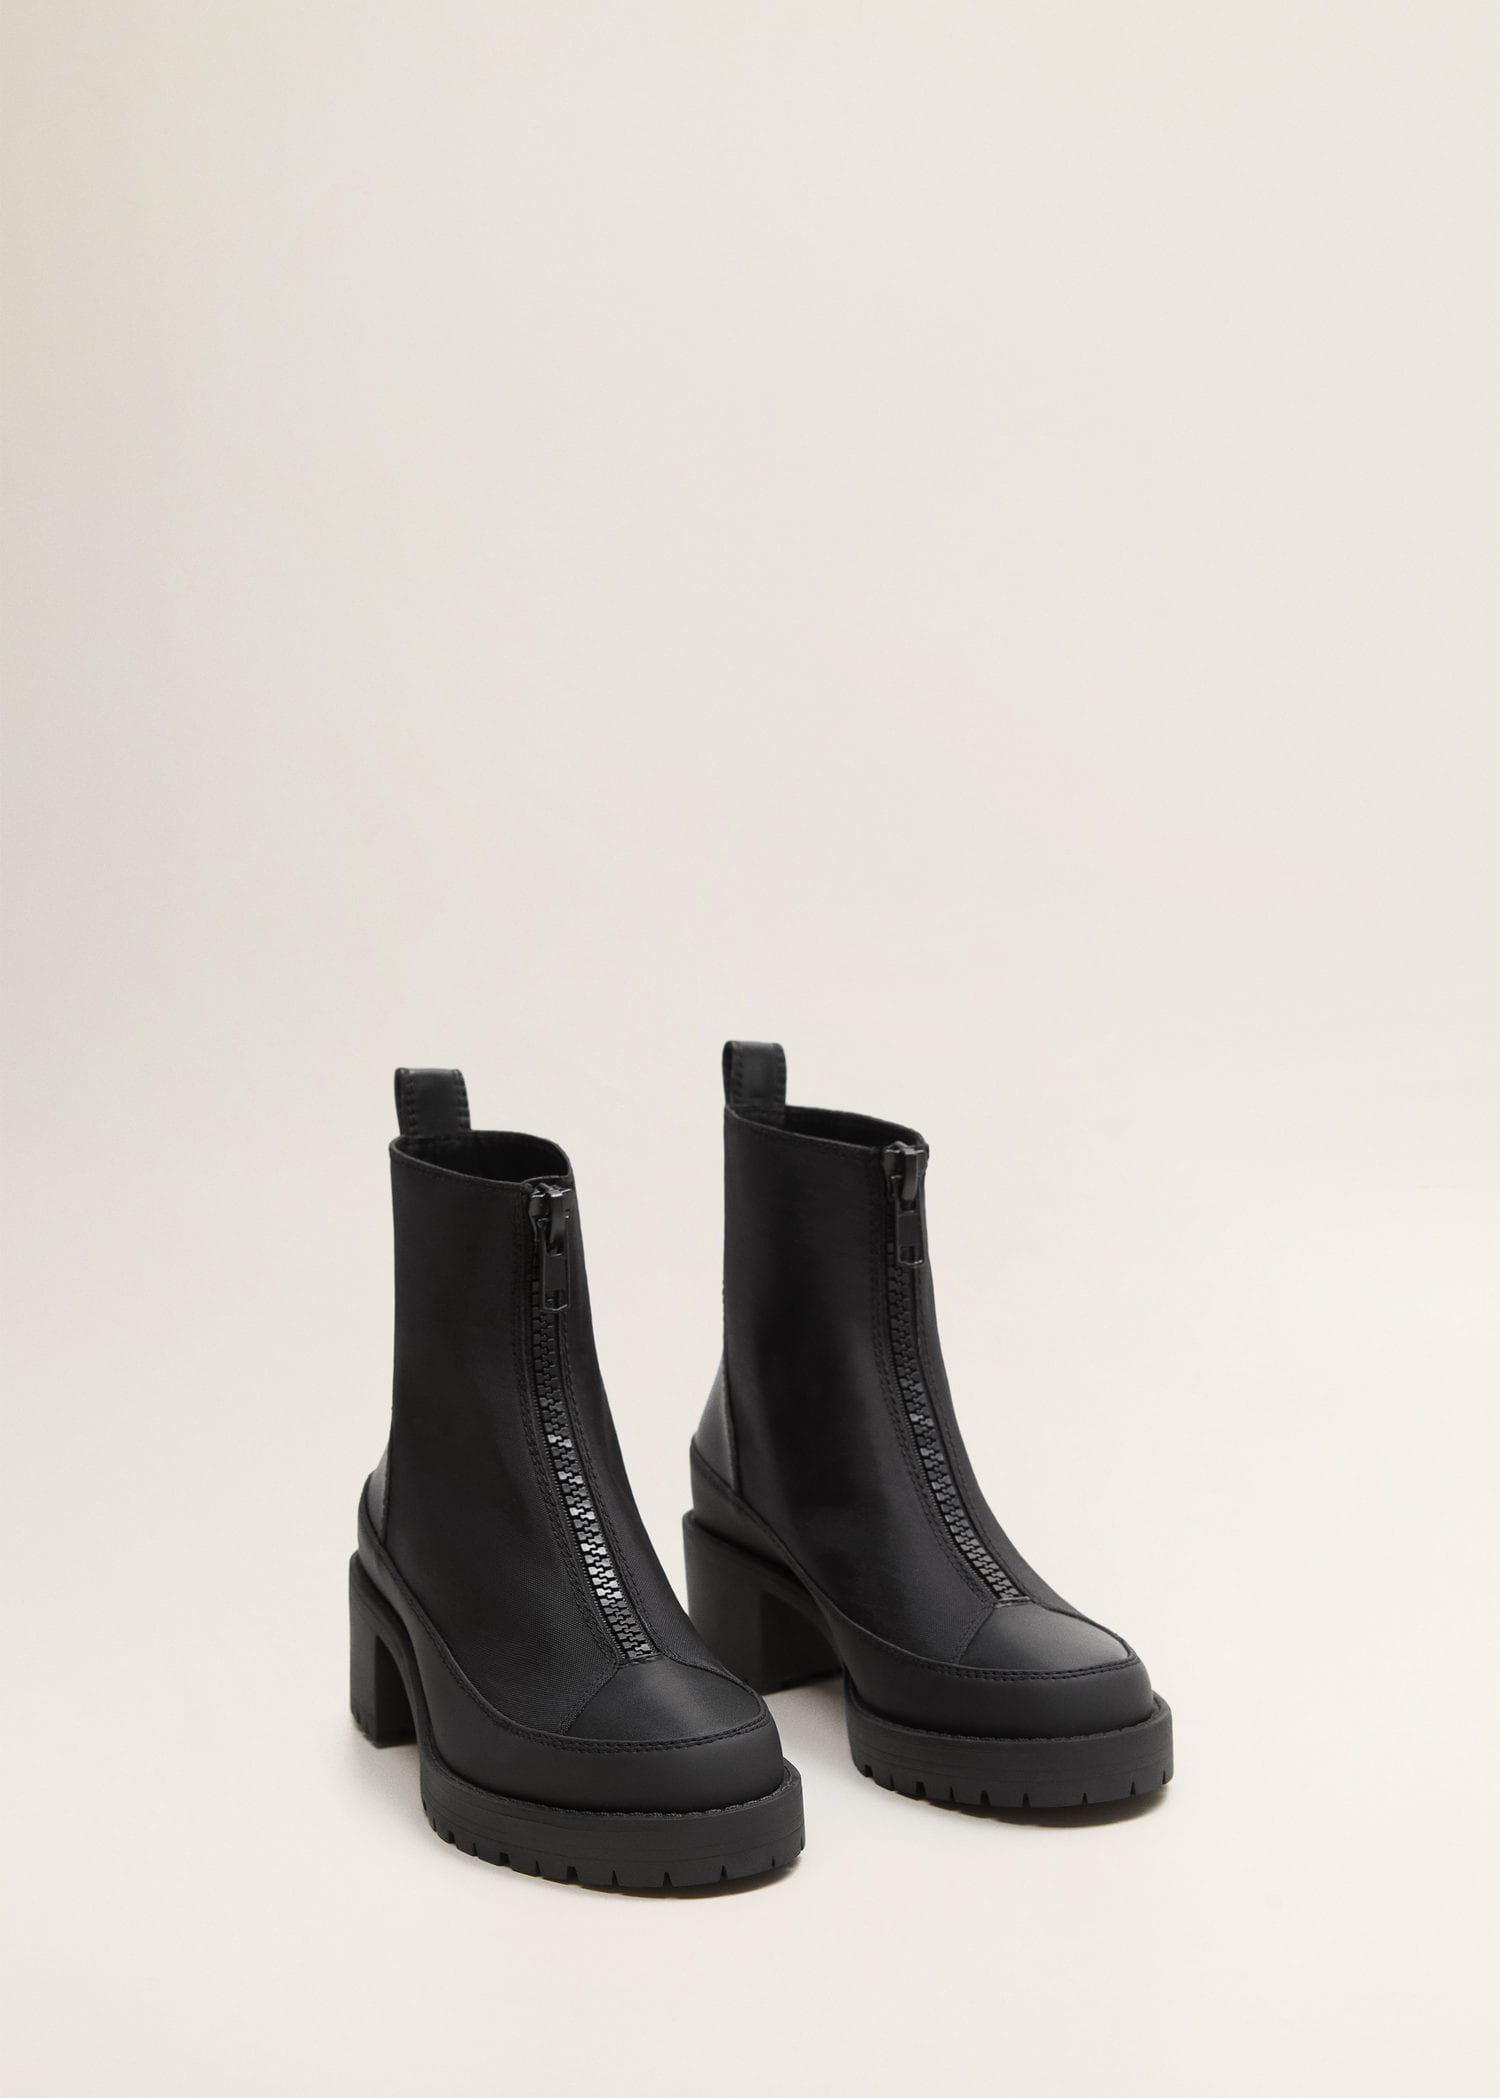 1bc3d262cfa Cheap Boots For Women To Buy This Fall